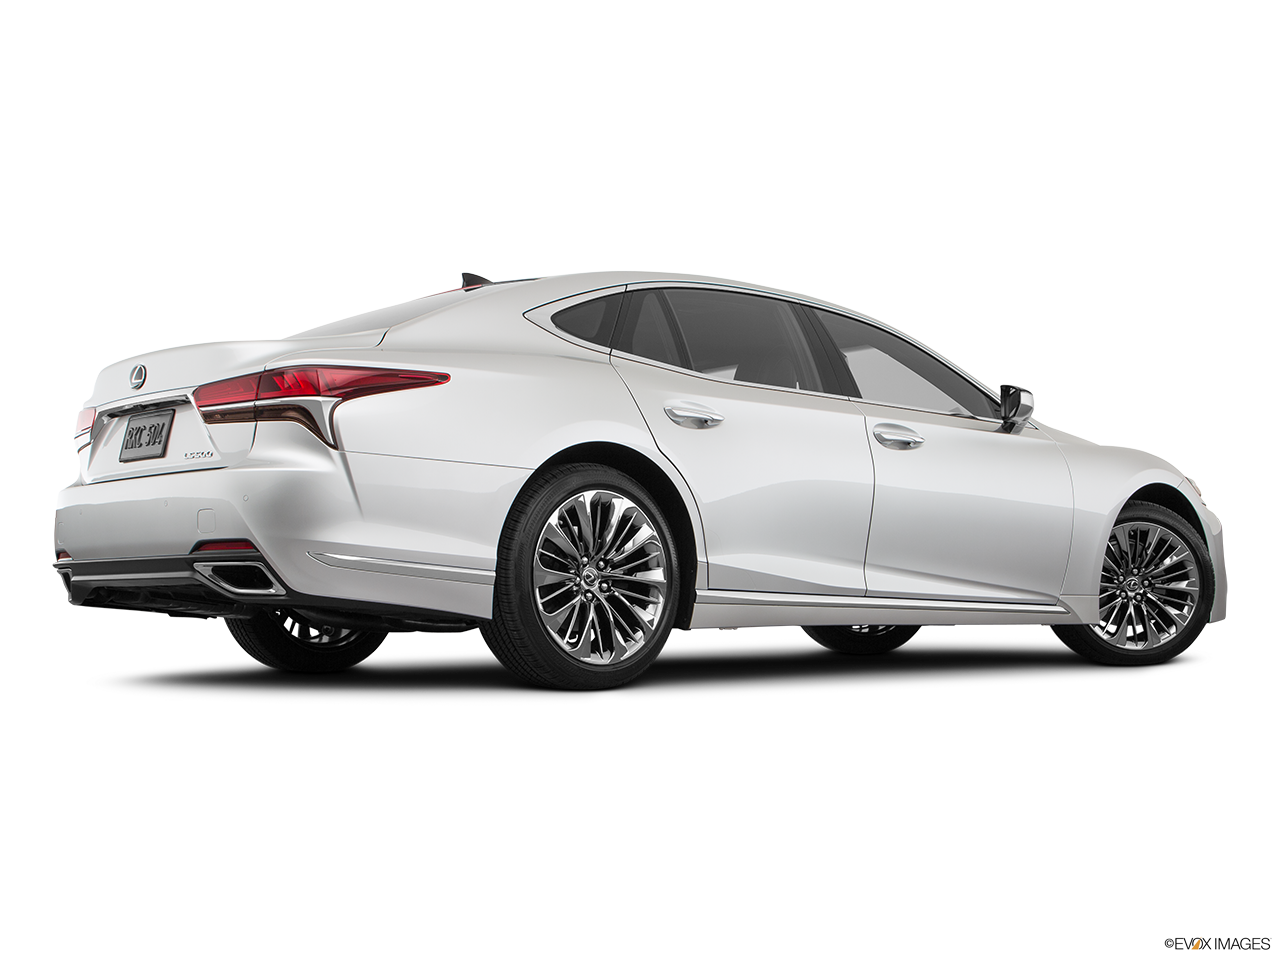 2020 Lexus LS 500 photo